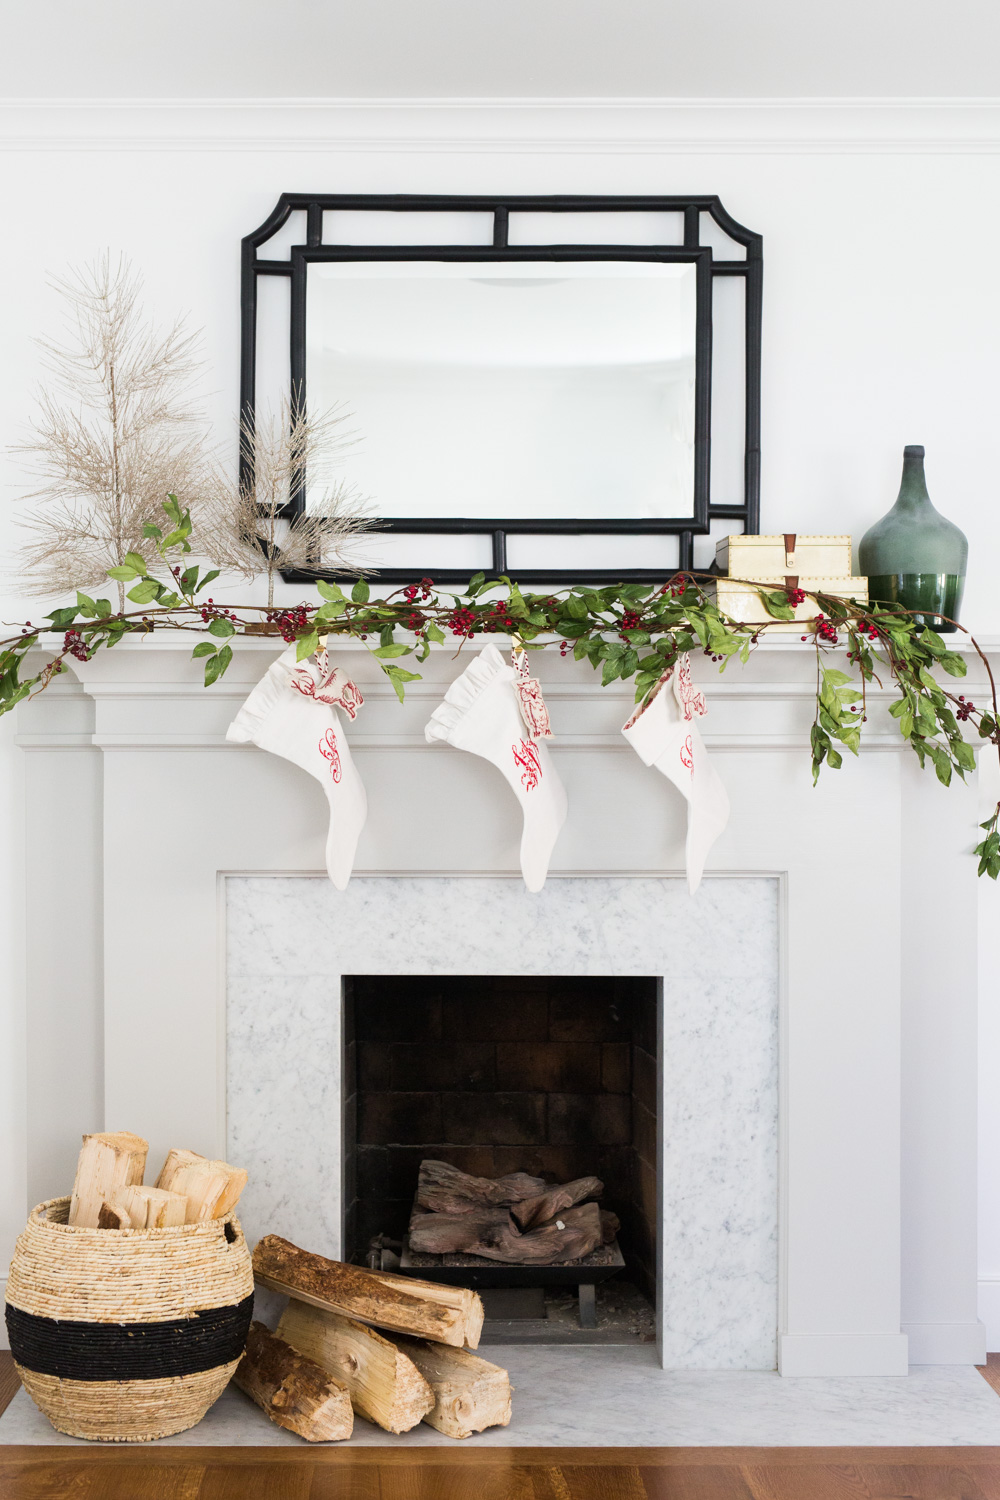 HOLIDAY DECORATING WITH STUDIO MCGEE